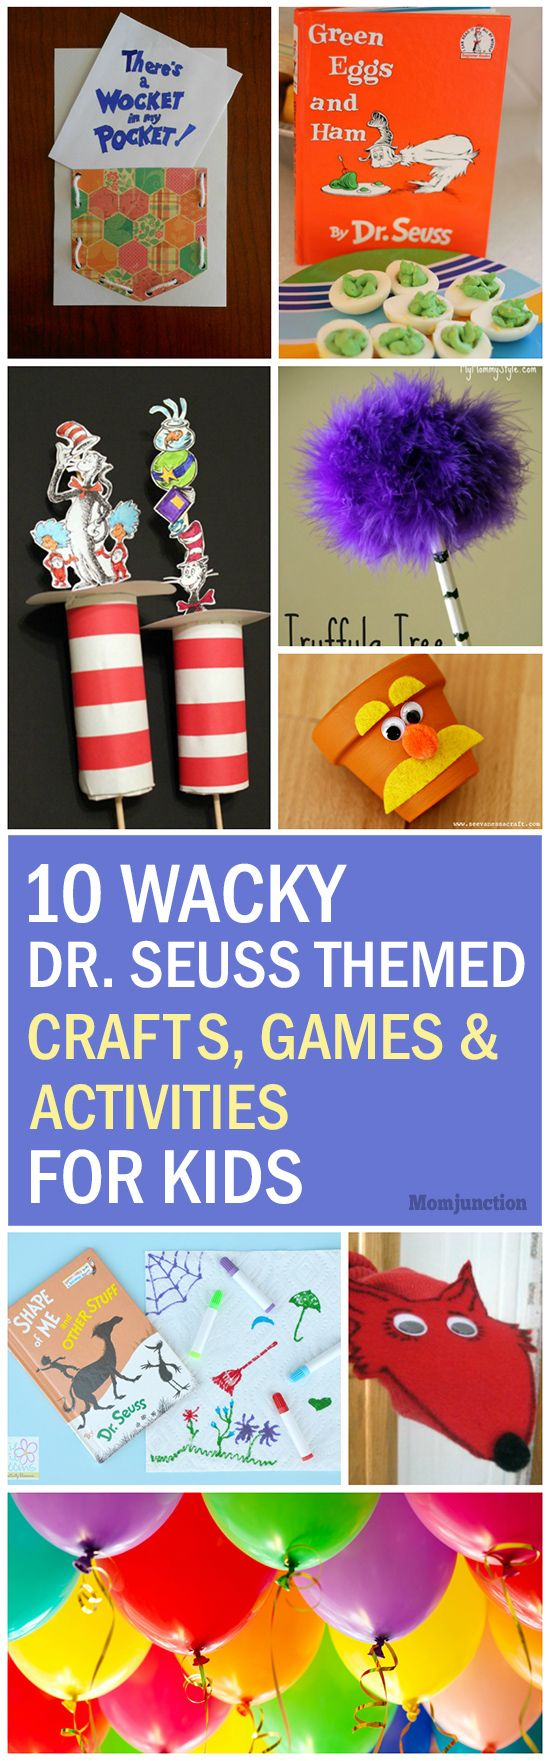 Top 10 Dr. Seuss Themed Crafts, Games And Activities For Kids